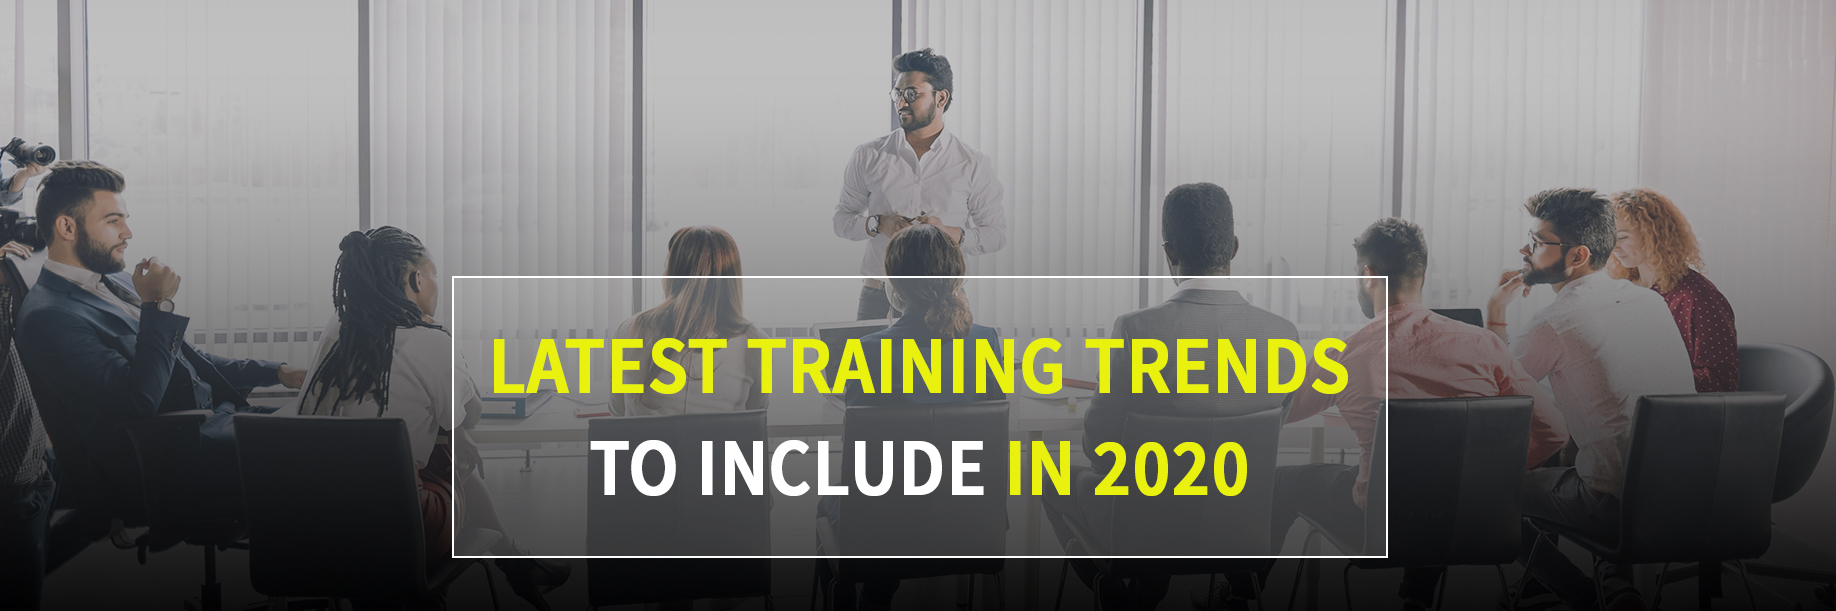 Latest Training Trends to Include in 2020